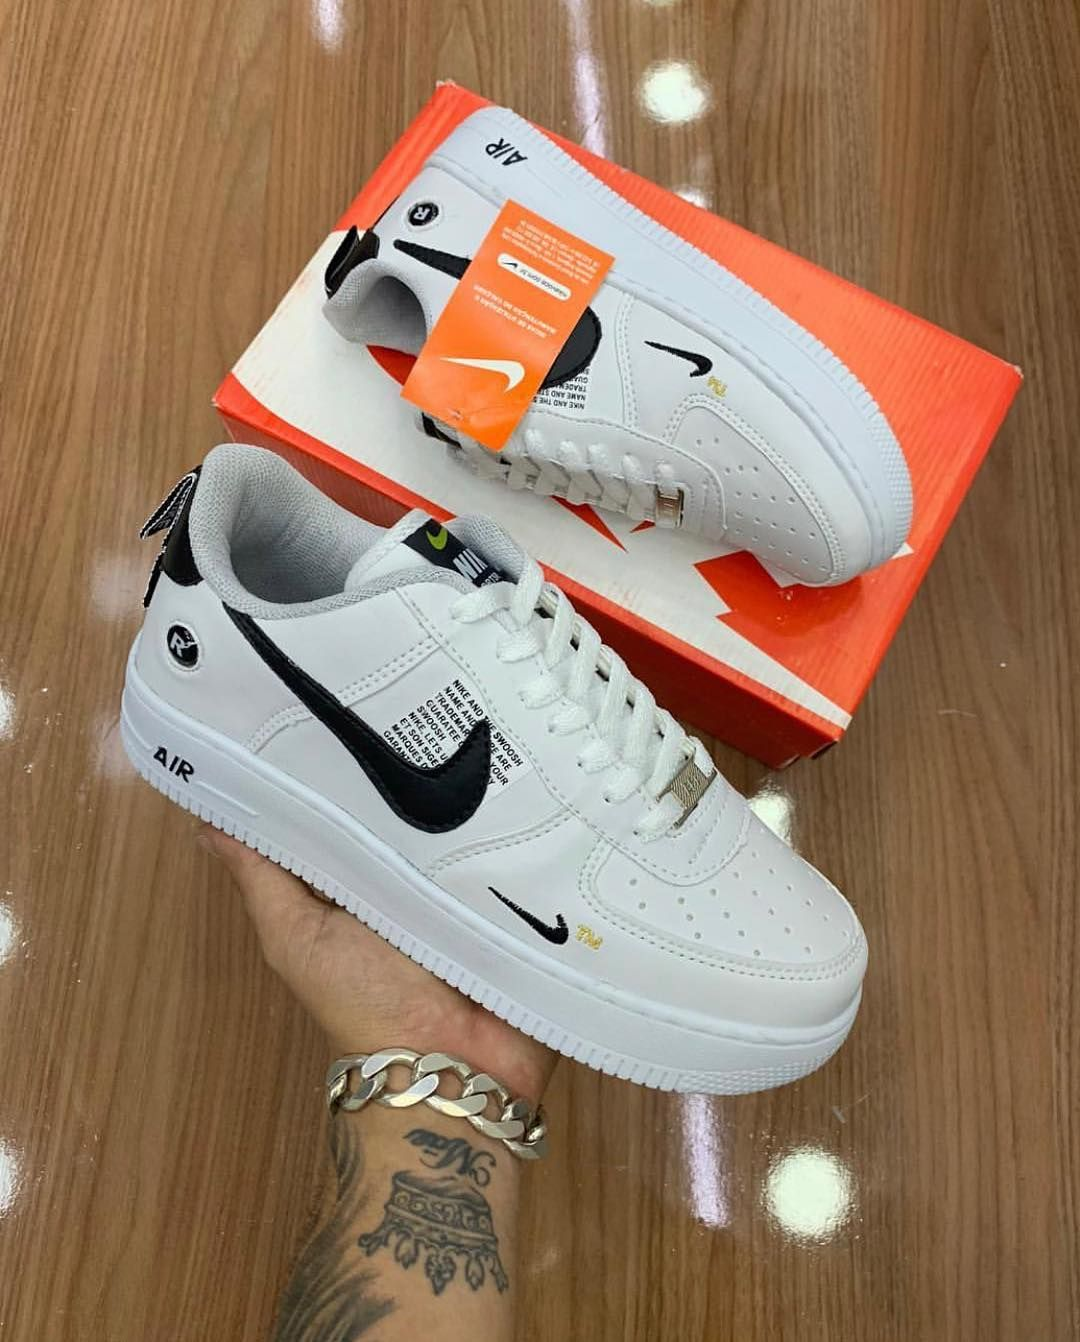 NIKE AIR FORCE 1 Lv 8 Utility (PHOTO link) 38 to 43 10% OFF